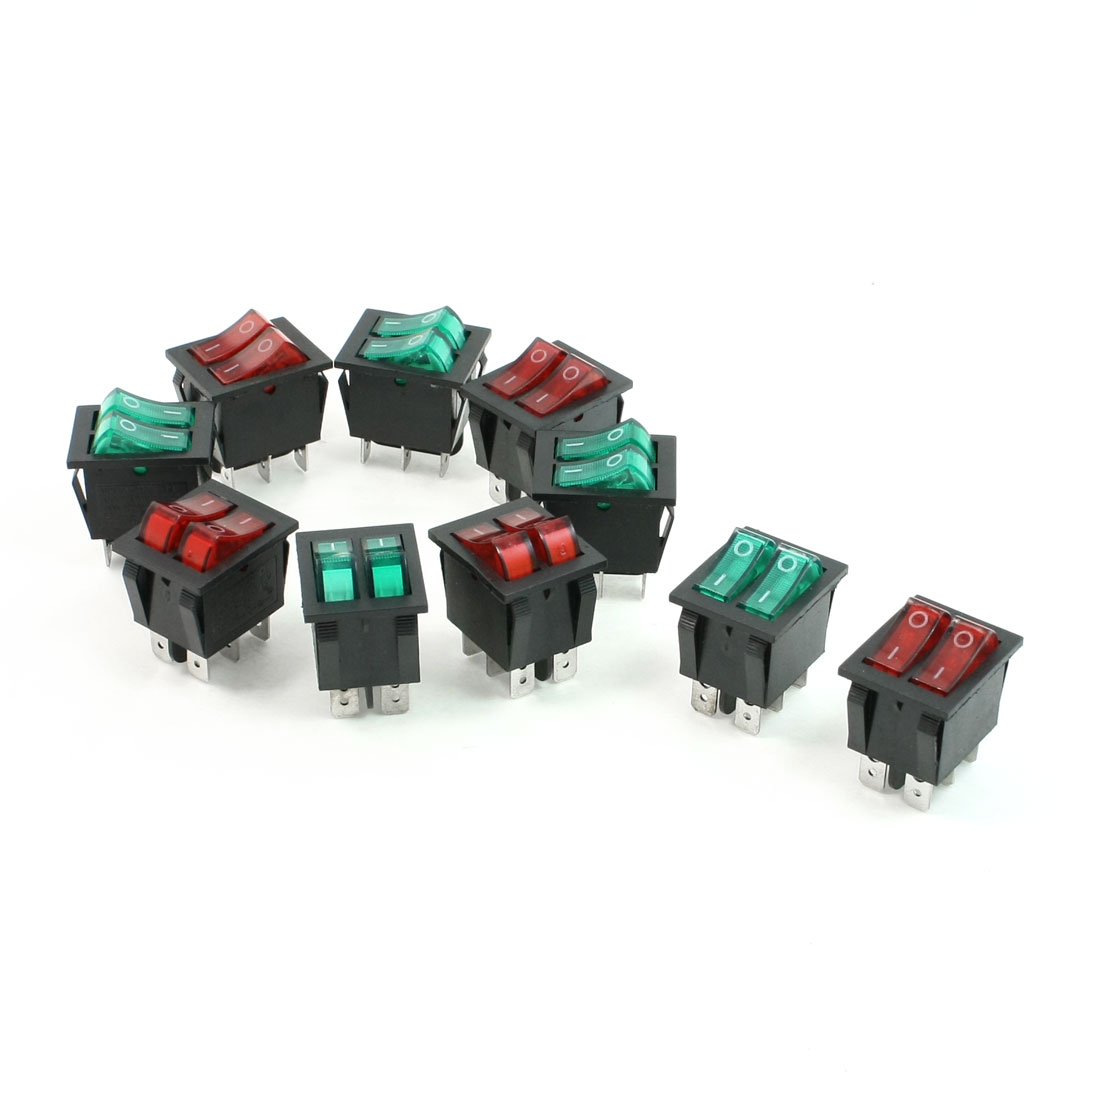 10 Pcs 6A/250V 20A/125V AC Red Green Neon Lamp SPST ON/OFF Boat Rocker Switch